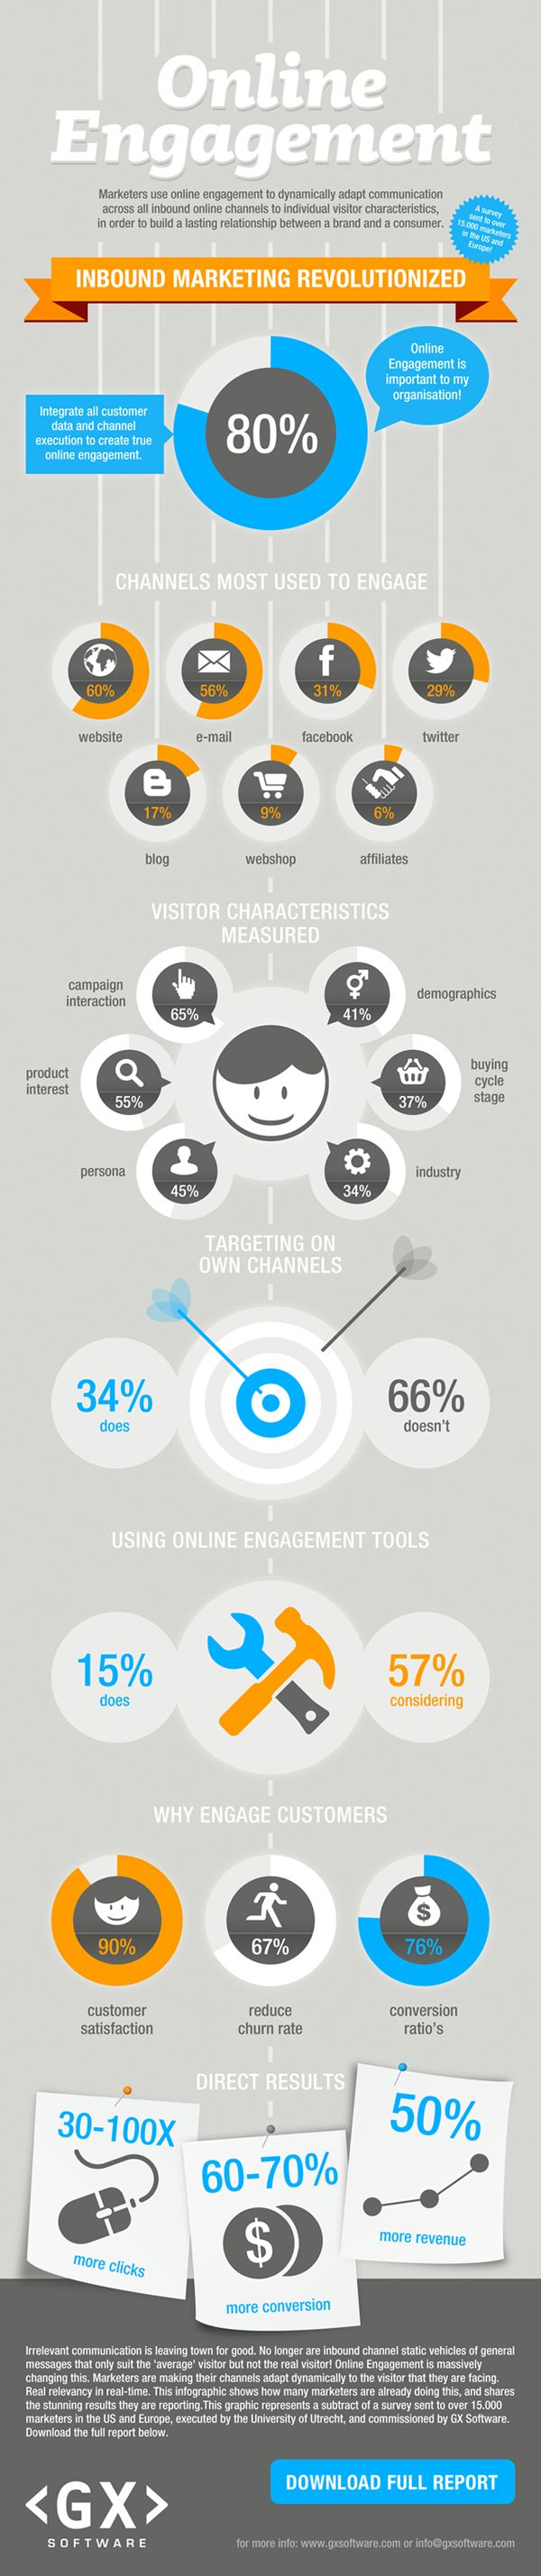 The State of Online Engagement in 2012